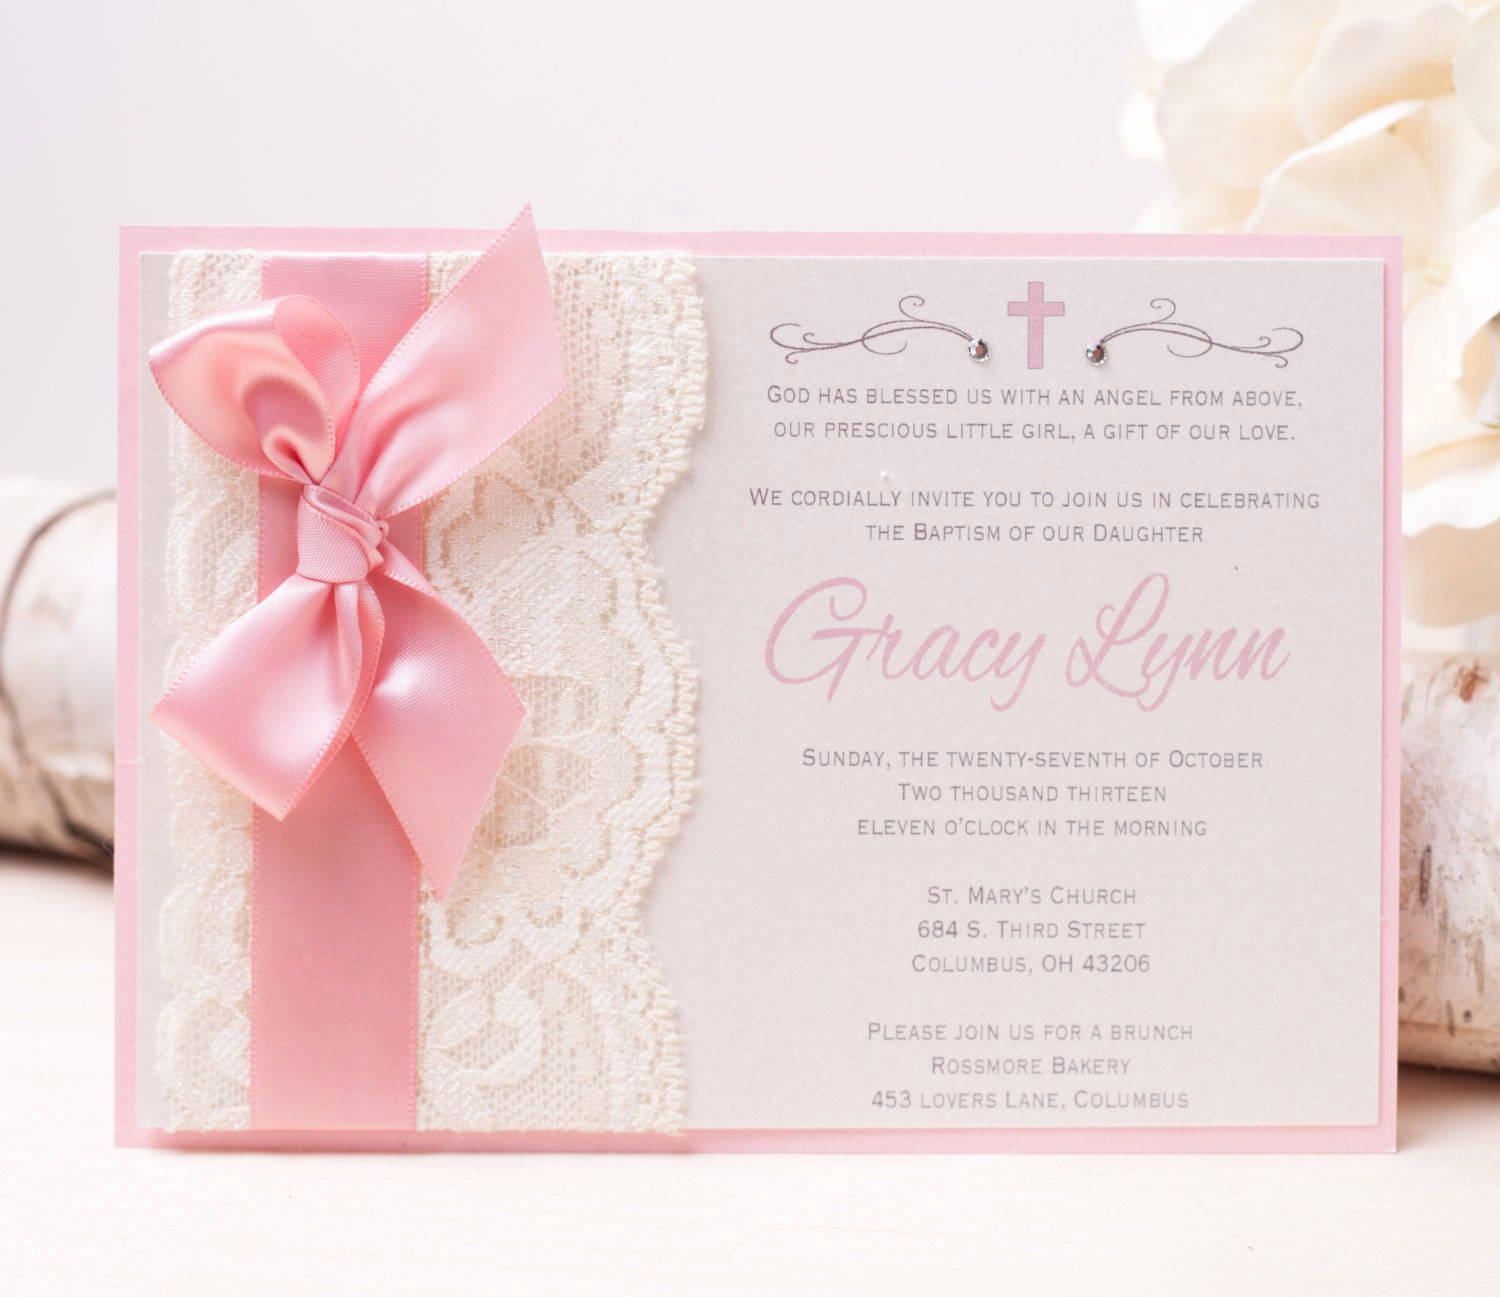 Precious Moment Wedding Invitation Fresh Girl Baptism Invitations Precious Moments Baptism